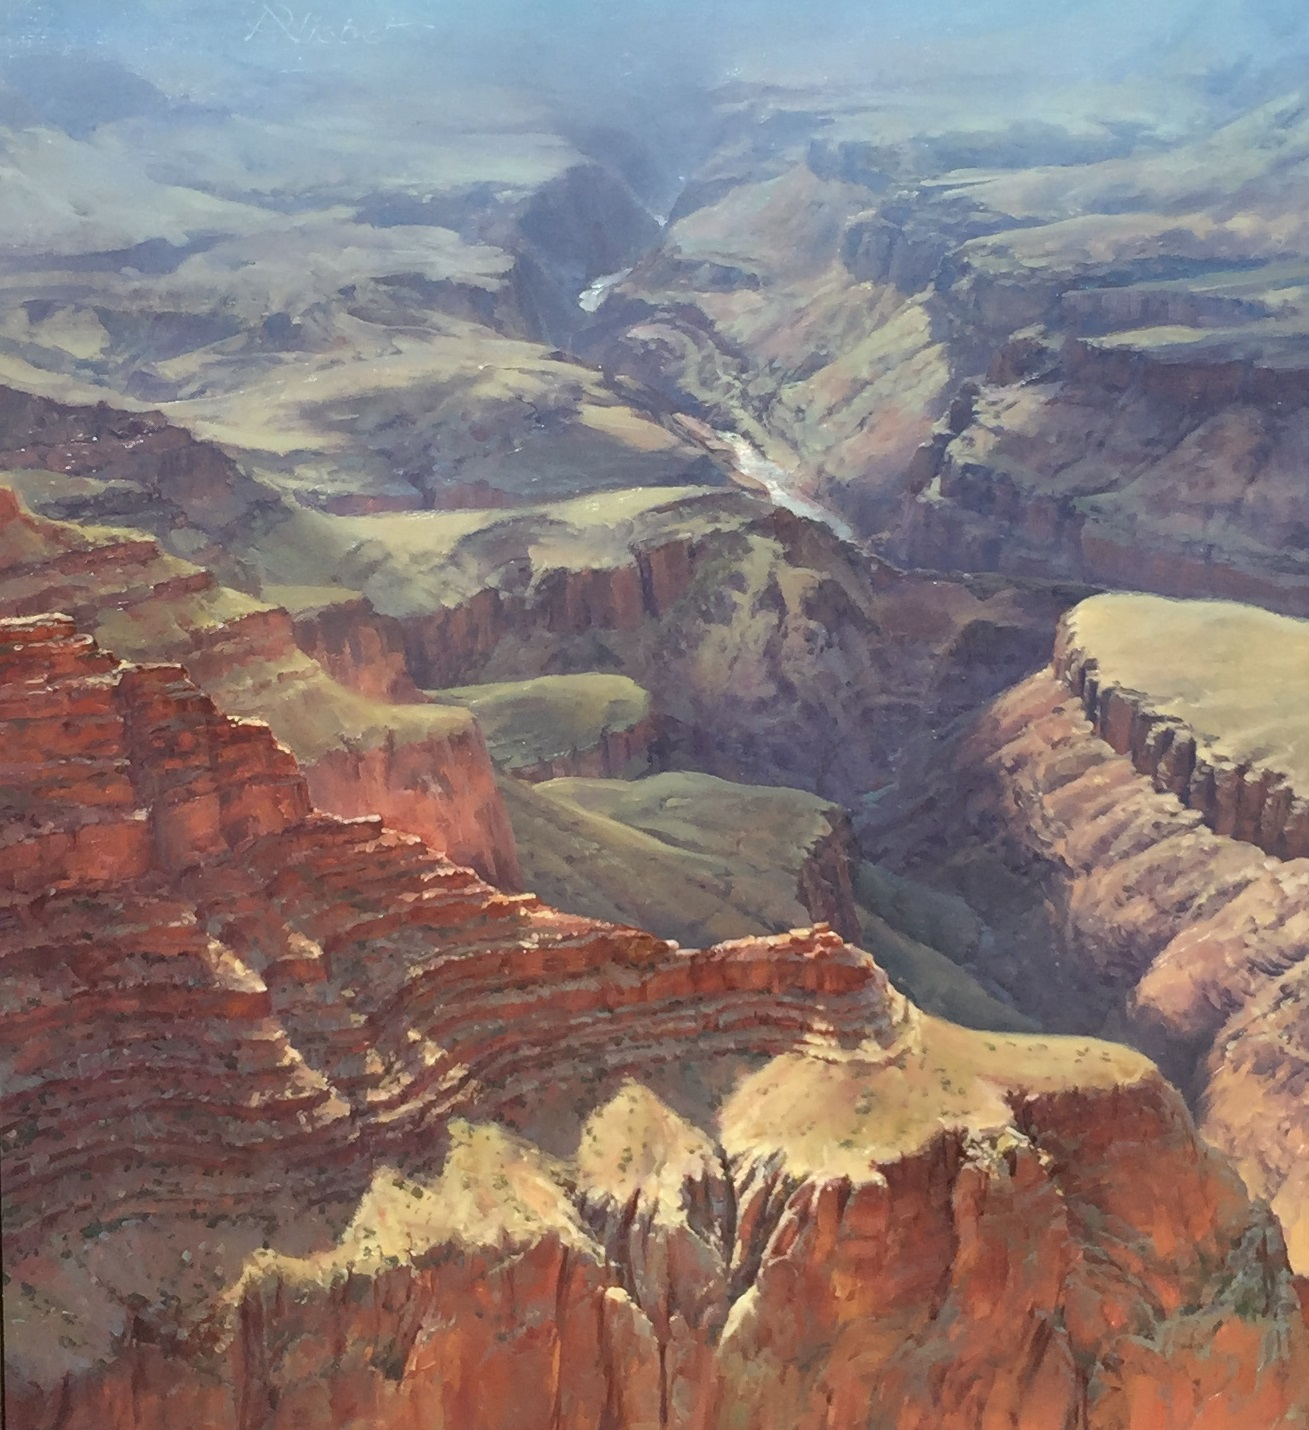 West View, Lipan point